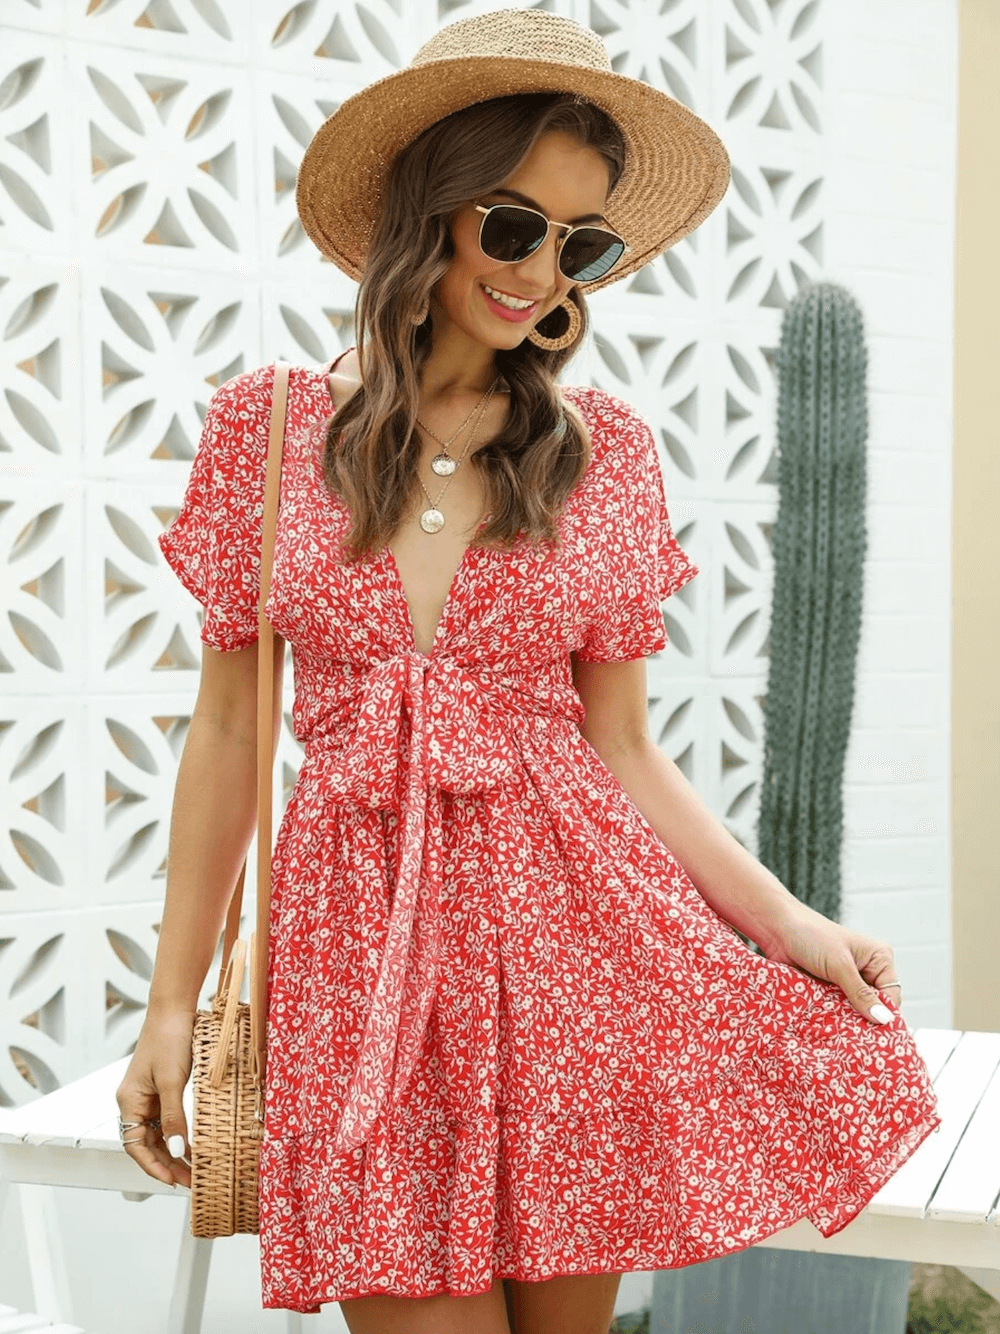 Summer Outfits Sundresses Beach Casual Red Floral Print Dress Shein